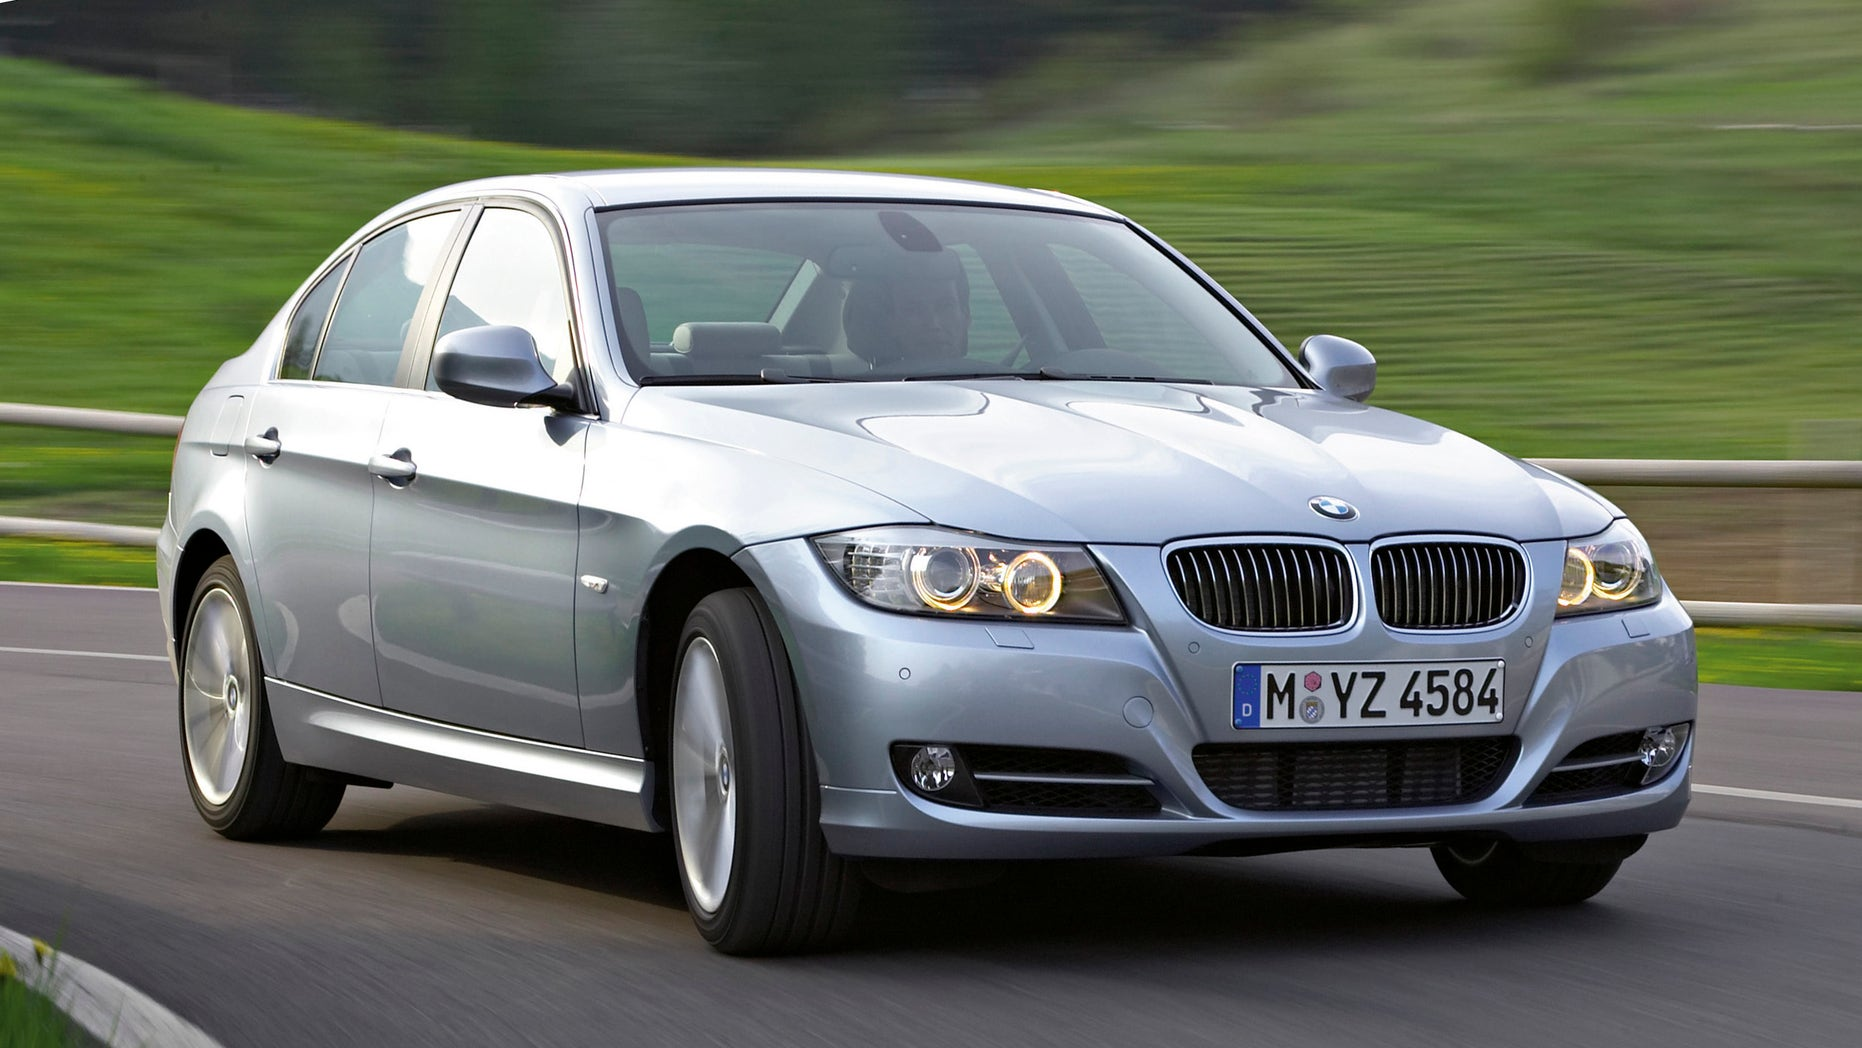 FILE - This undated photo provided by BMW AG shows the 2009 BMW 3-Series sedan. BMW is recalling almost 570,000 cars in the U.S. and Canada because a battery cable connector can fail and cause the engines to stall. The recall affects popular 3-Series sedans, wagons, convertibles and coupes from the 2007 through 2011 model years. Also included are 1-Series coupes and convertibles from 2008 through 2012, and the Z4 sports car from 2009 through 2011. (AP Photo/BMW)